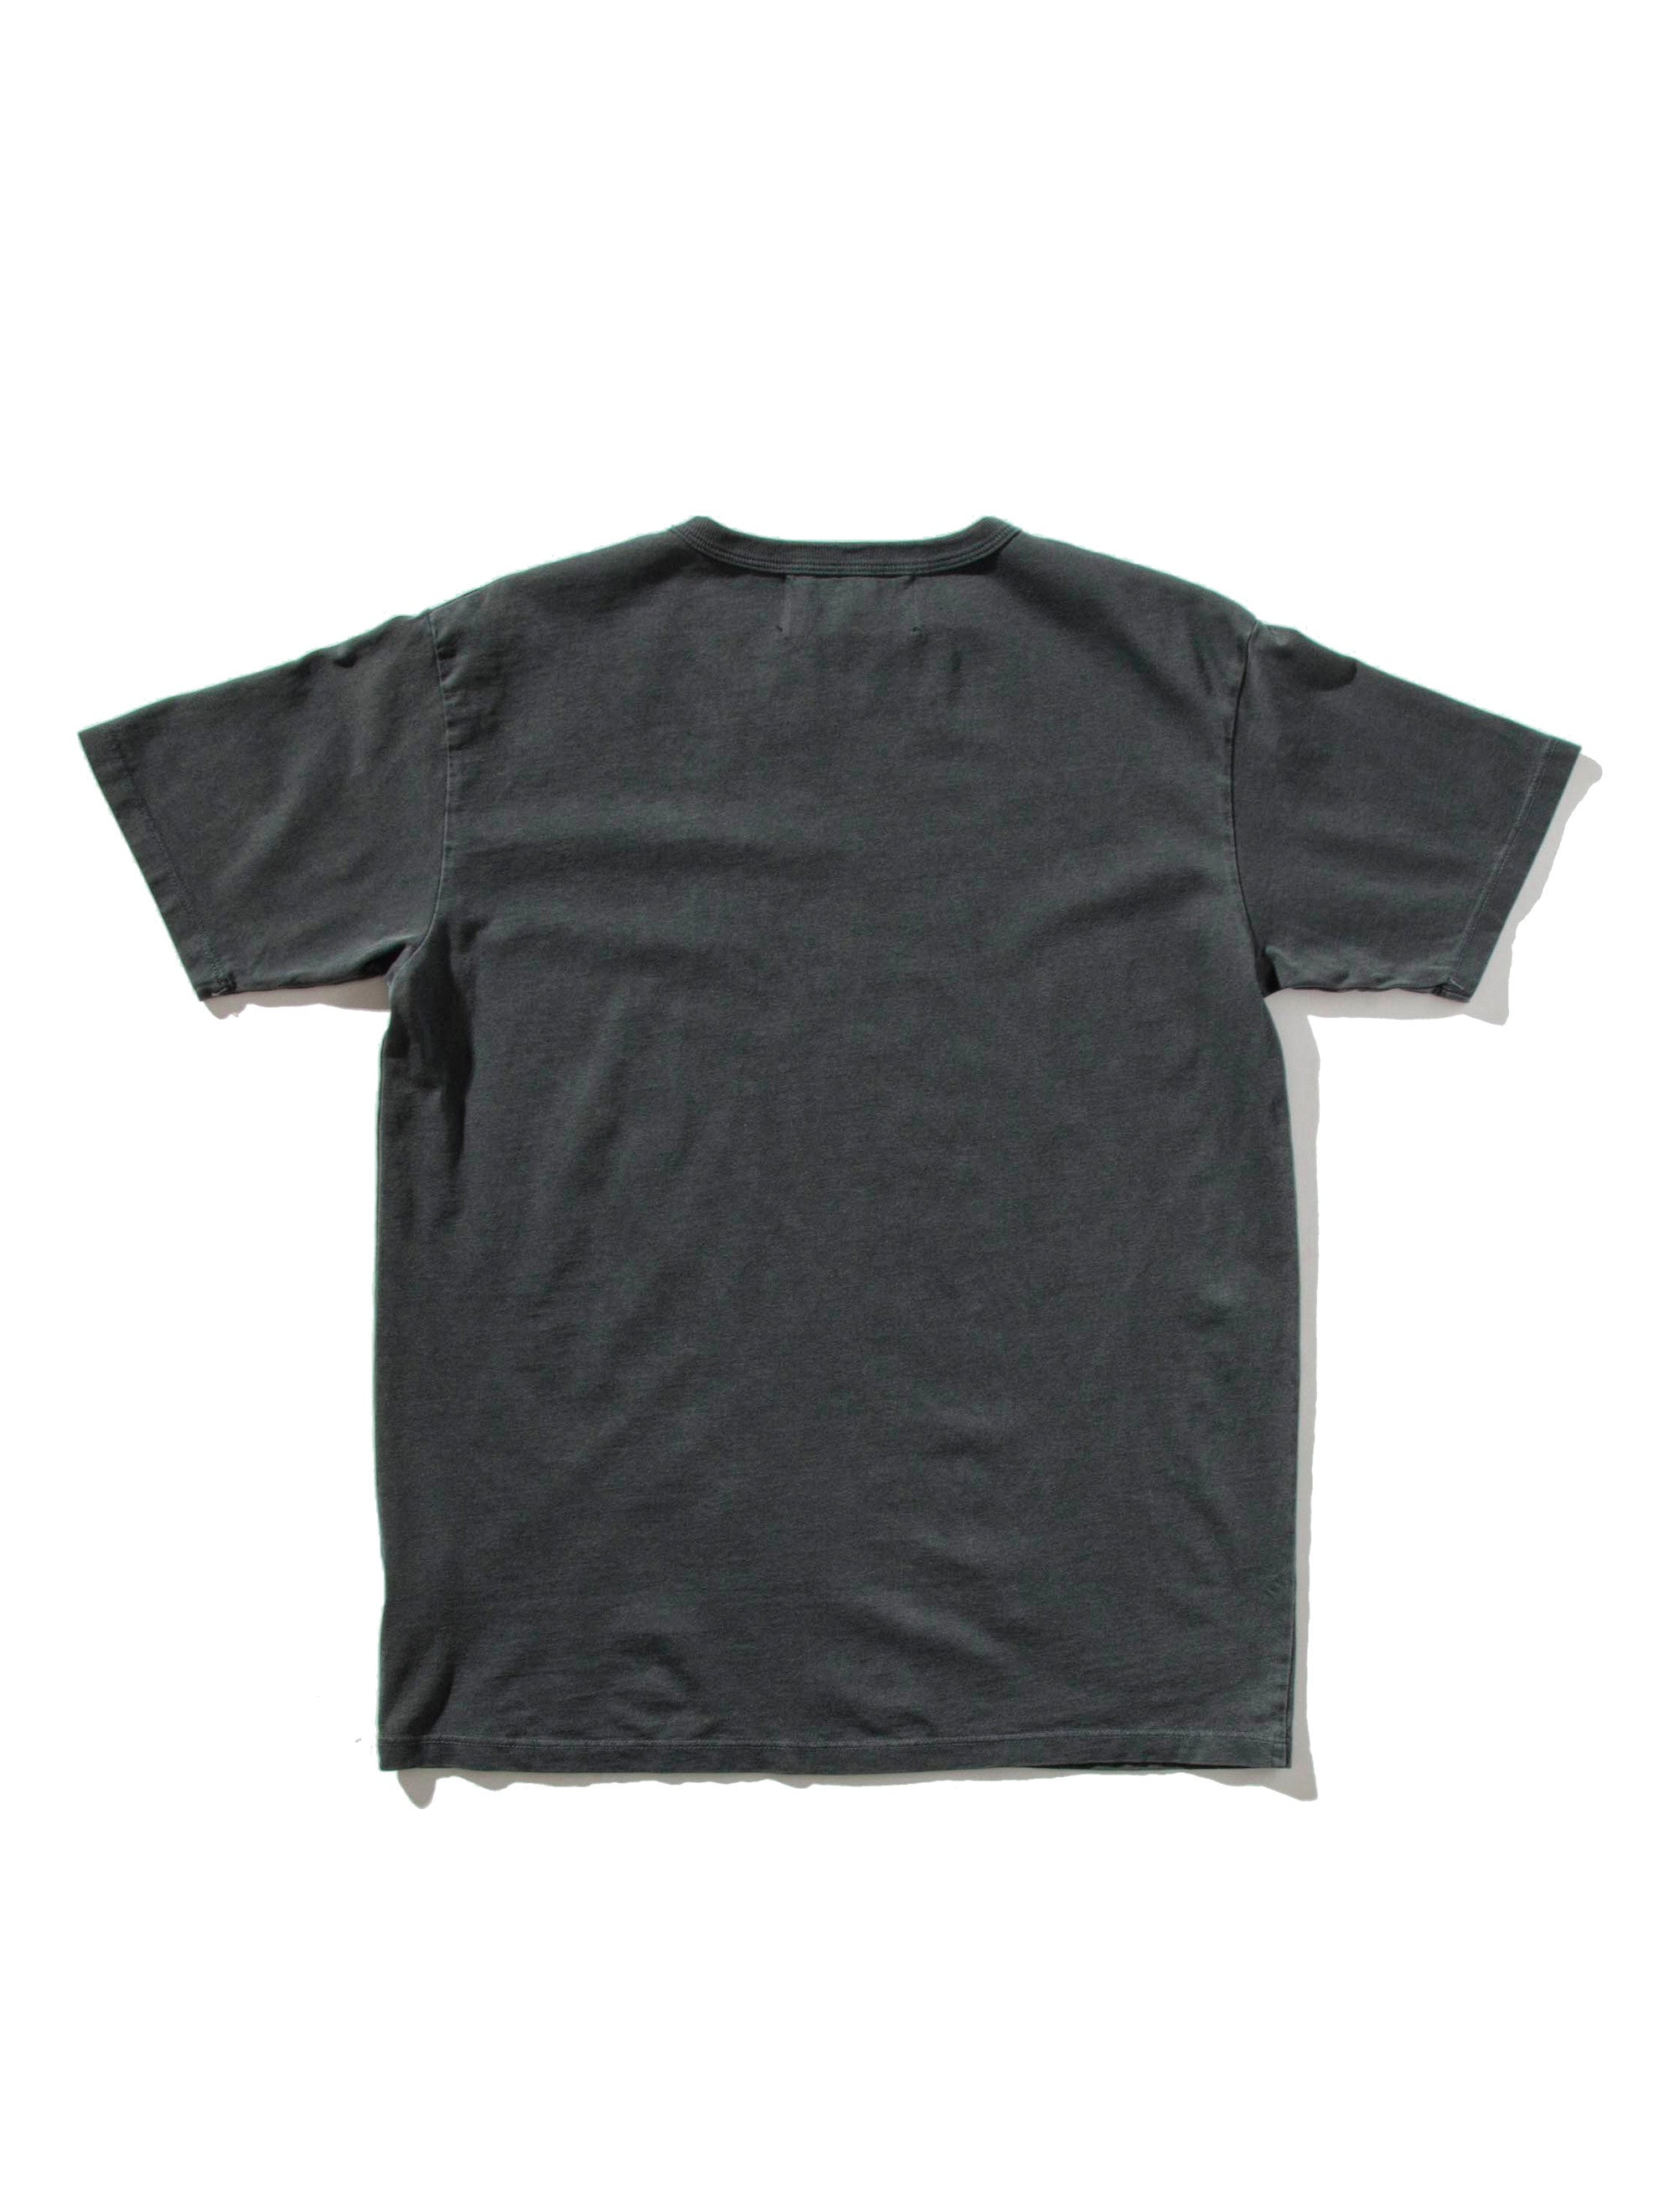 Over Dyed Black Arthur T-Shirt 8